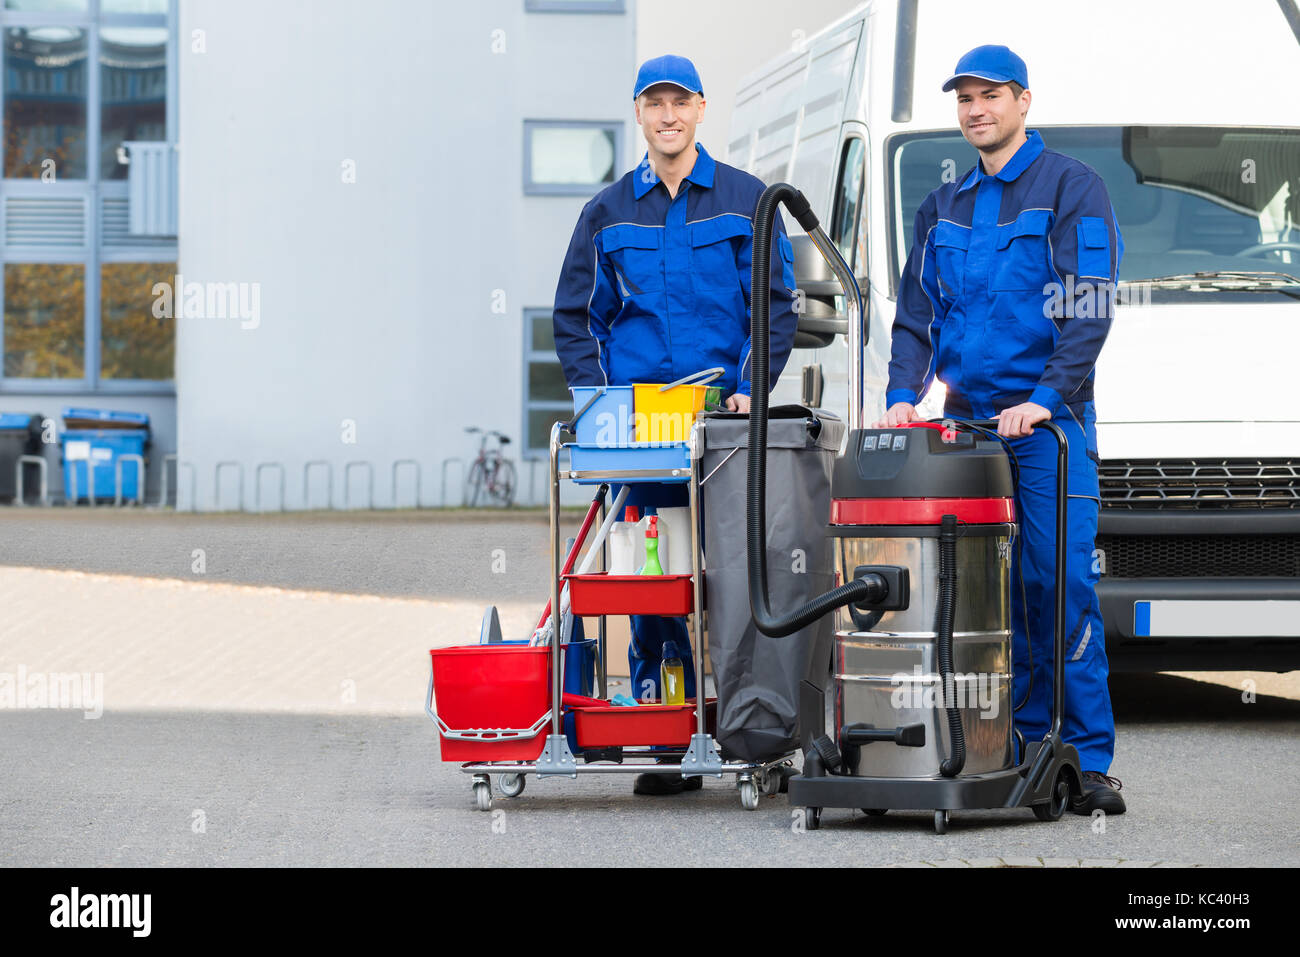 Portrait of confident male janitors with cleaning equipment standing on street Stock Photo